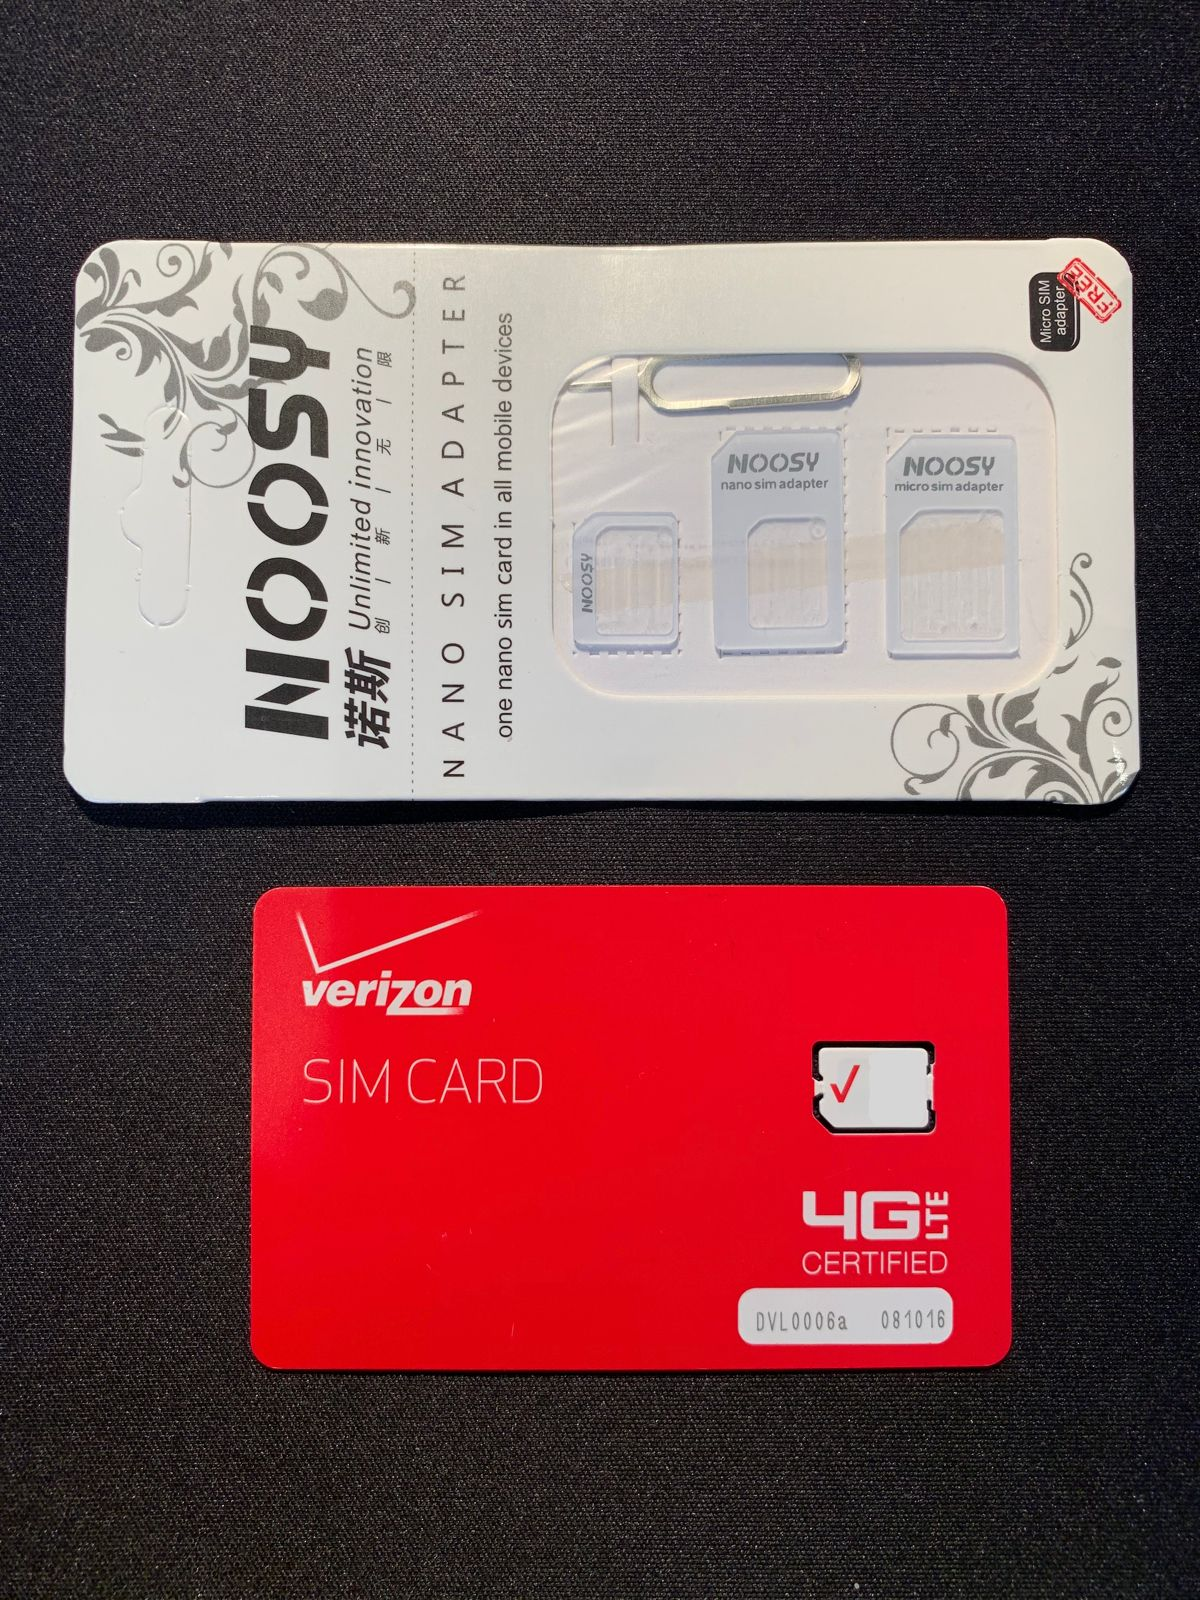 Phone Cards and SIM Cards 146492: Verizon Unlimited 4G Lte